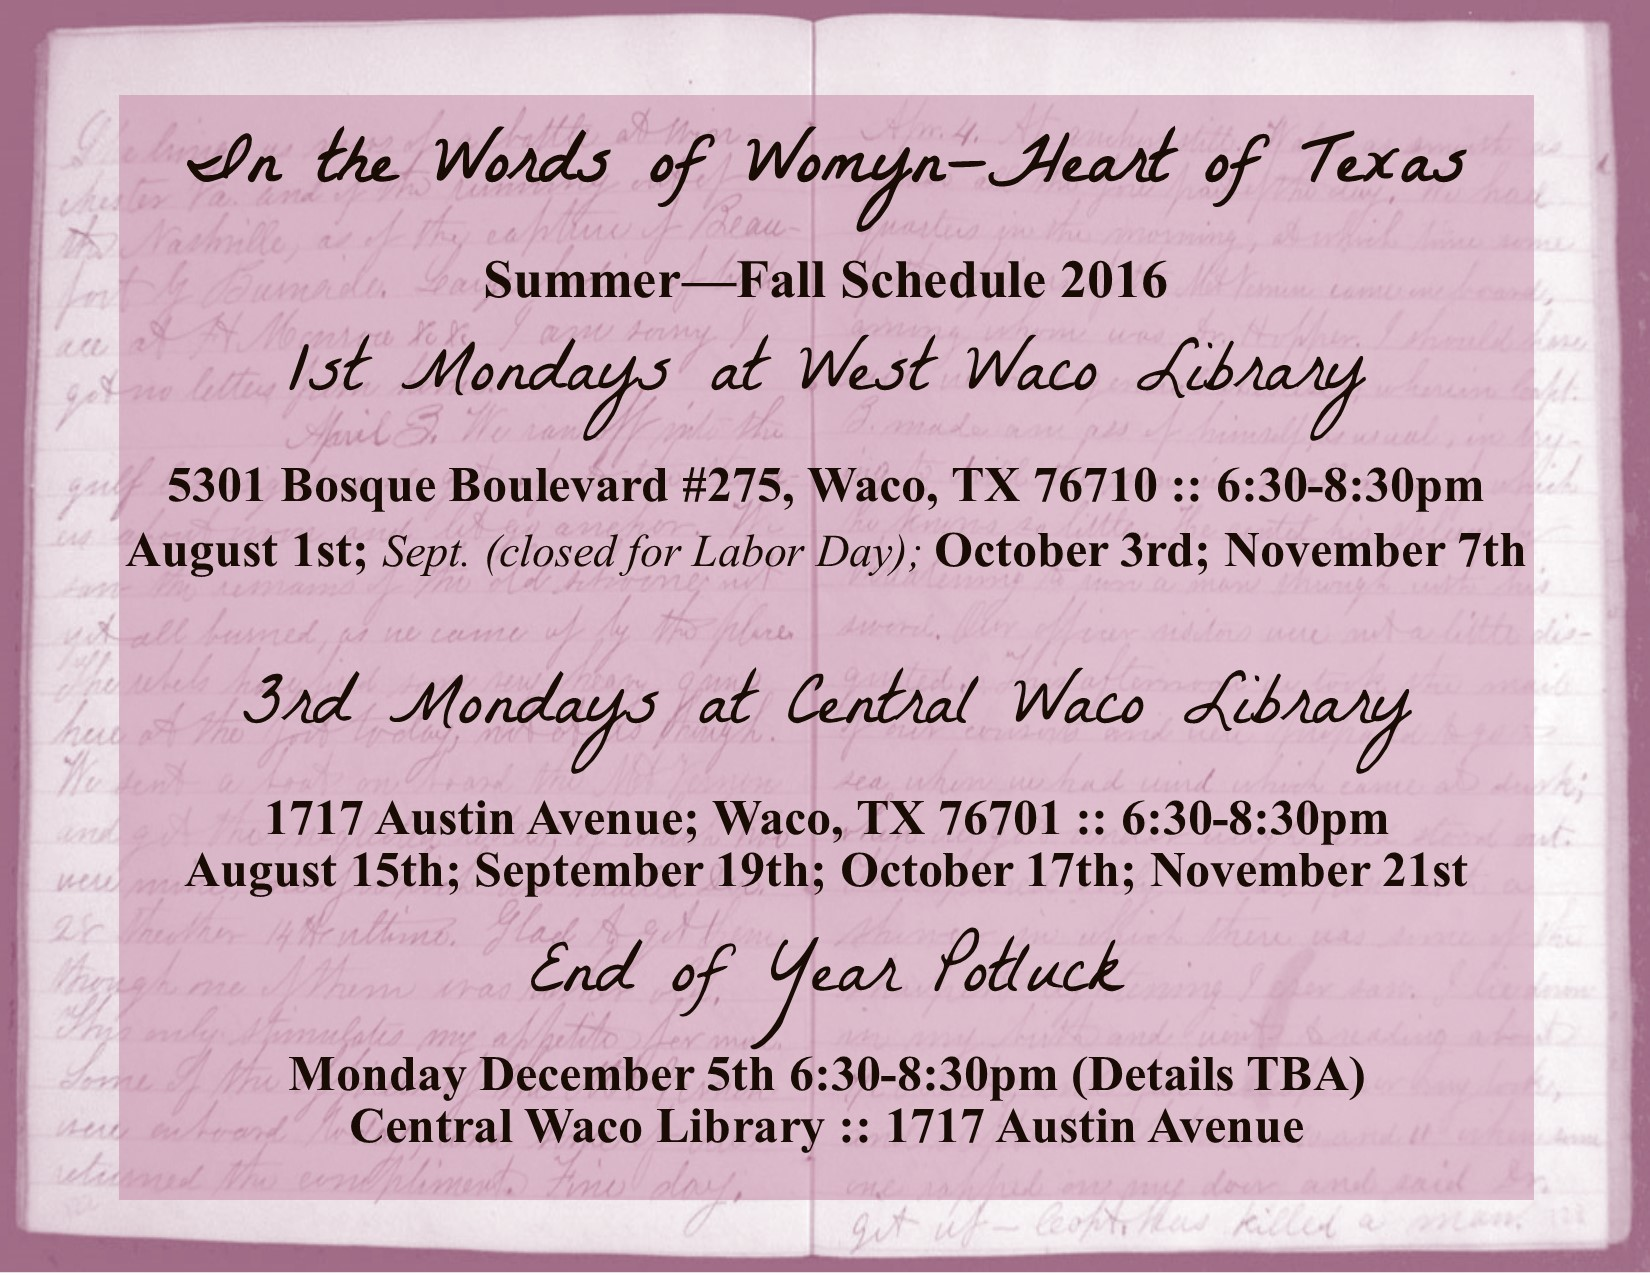 ITWOW Summer - Fall schedule